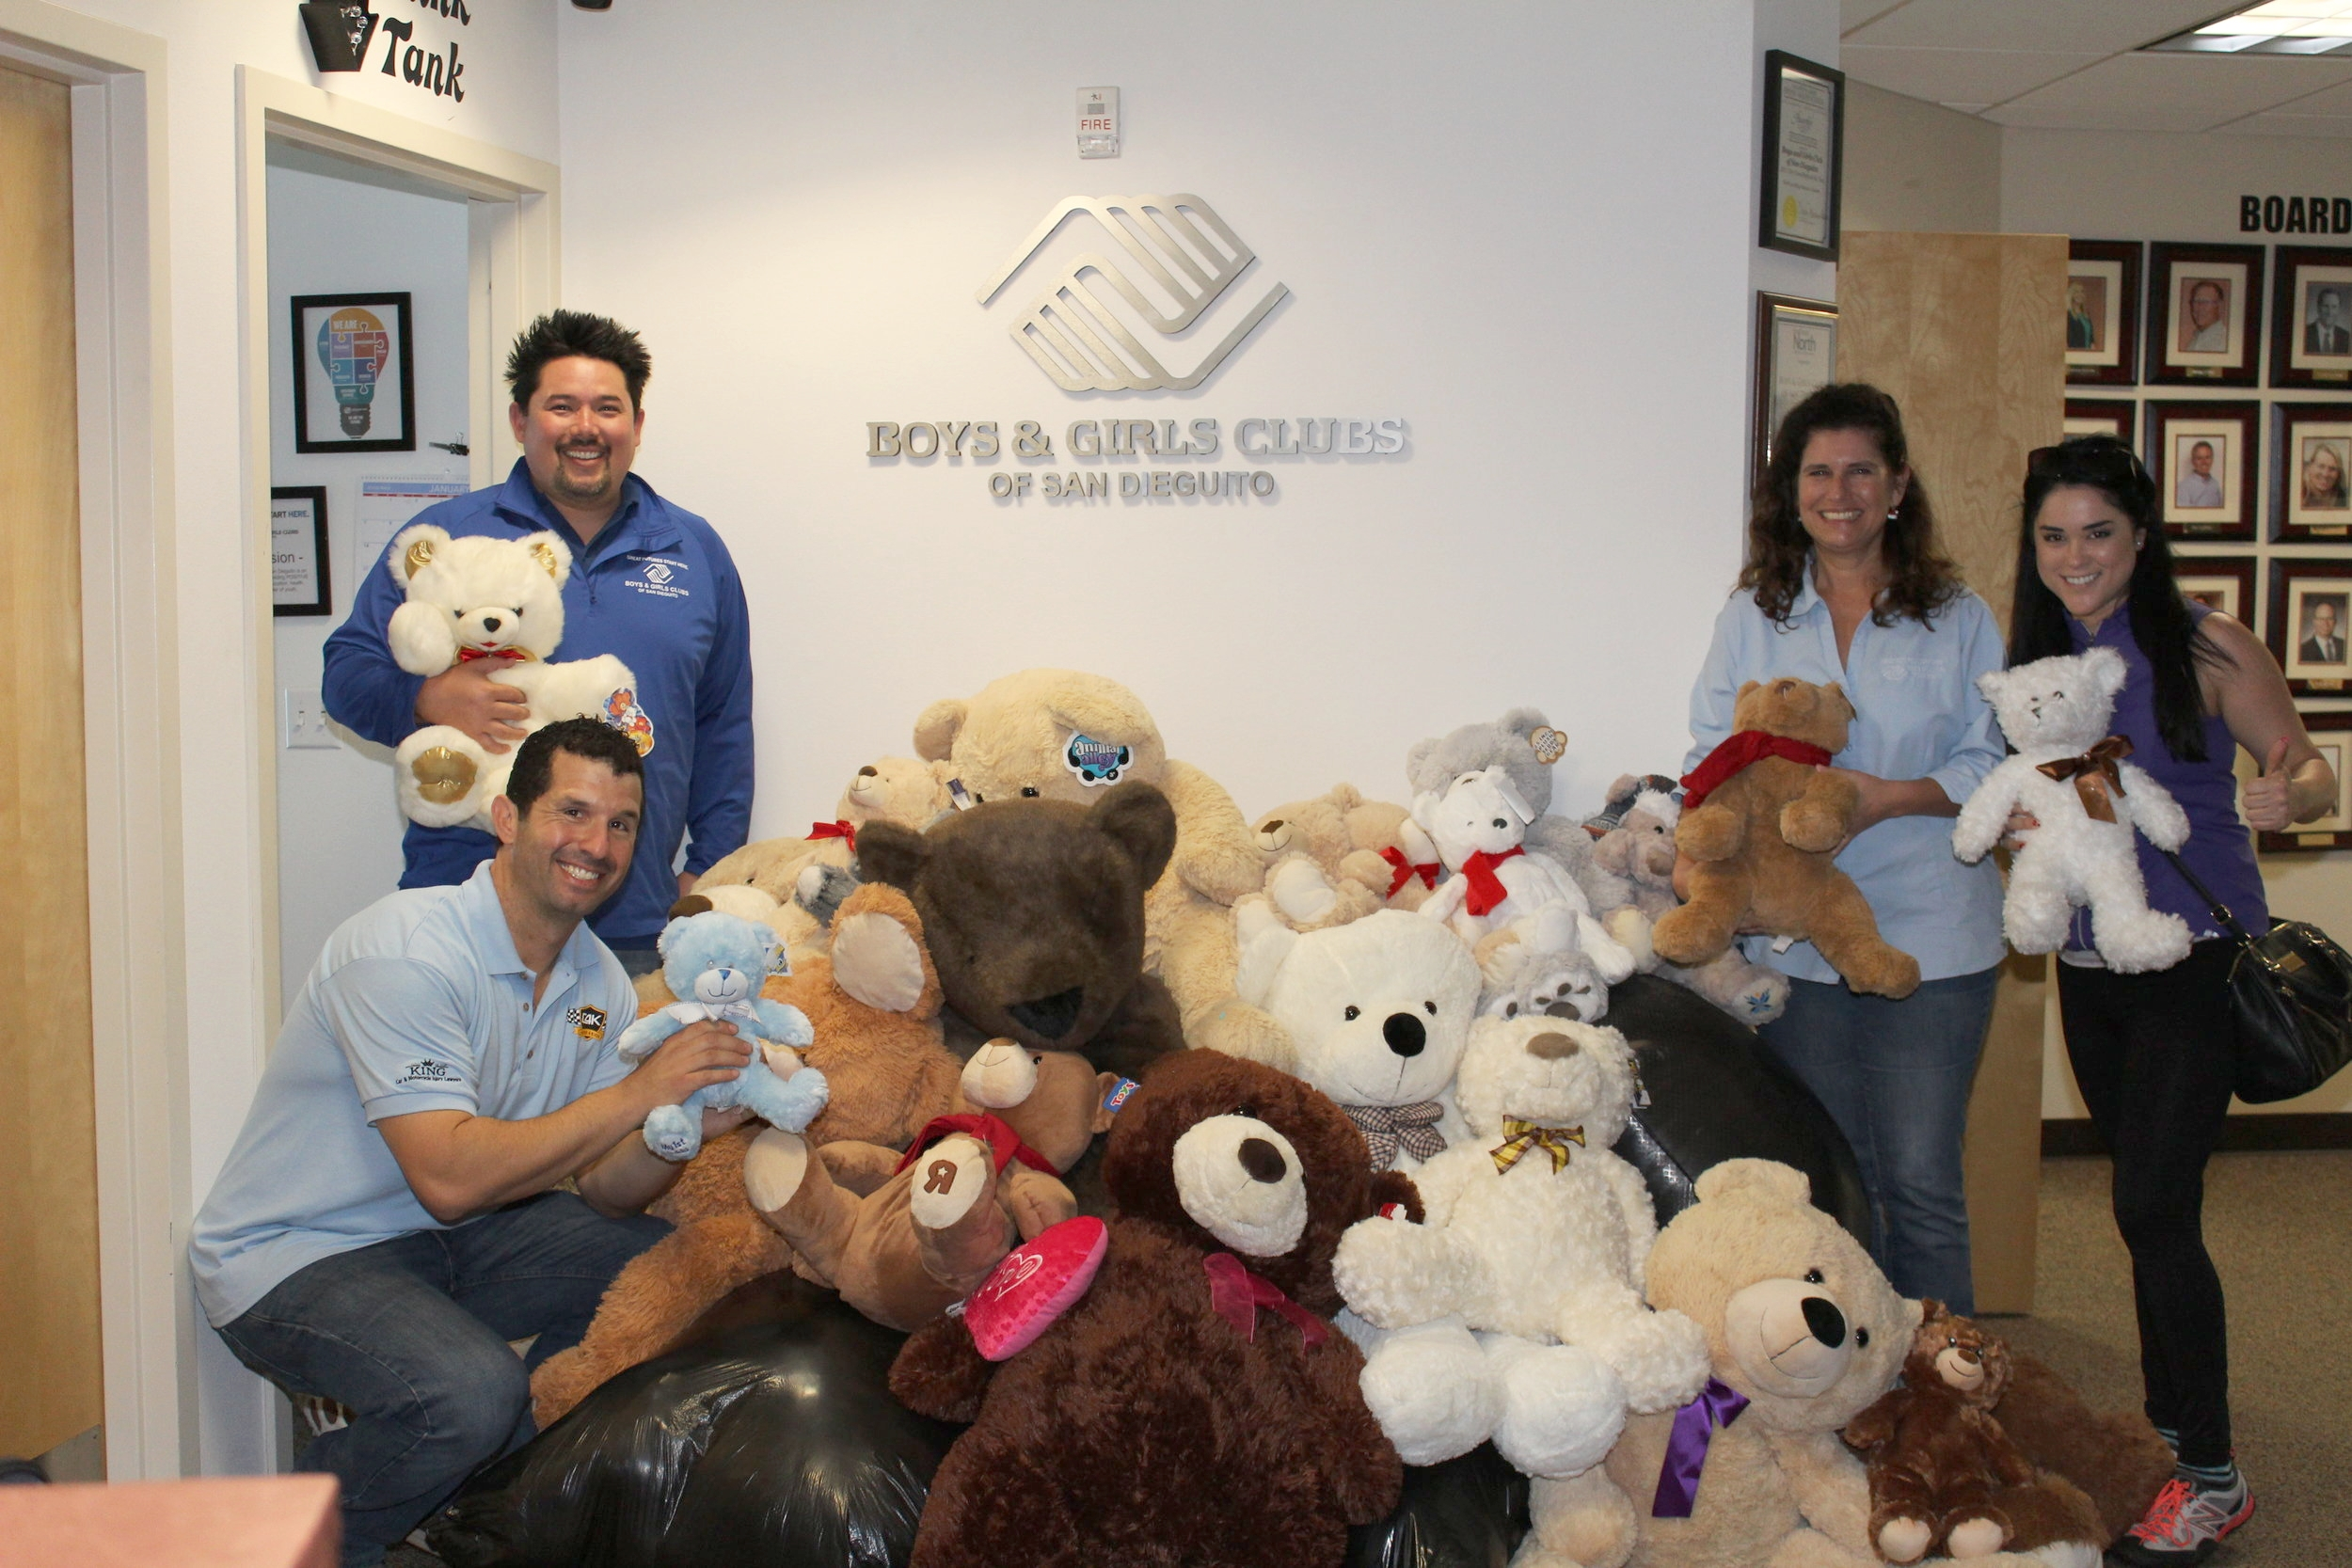 Boys and Girls Clubs of San Dieguito